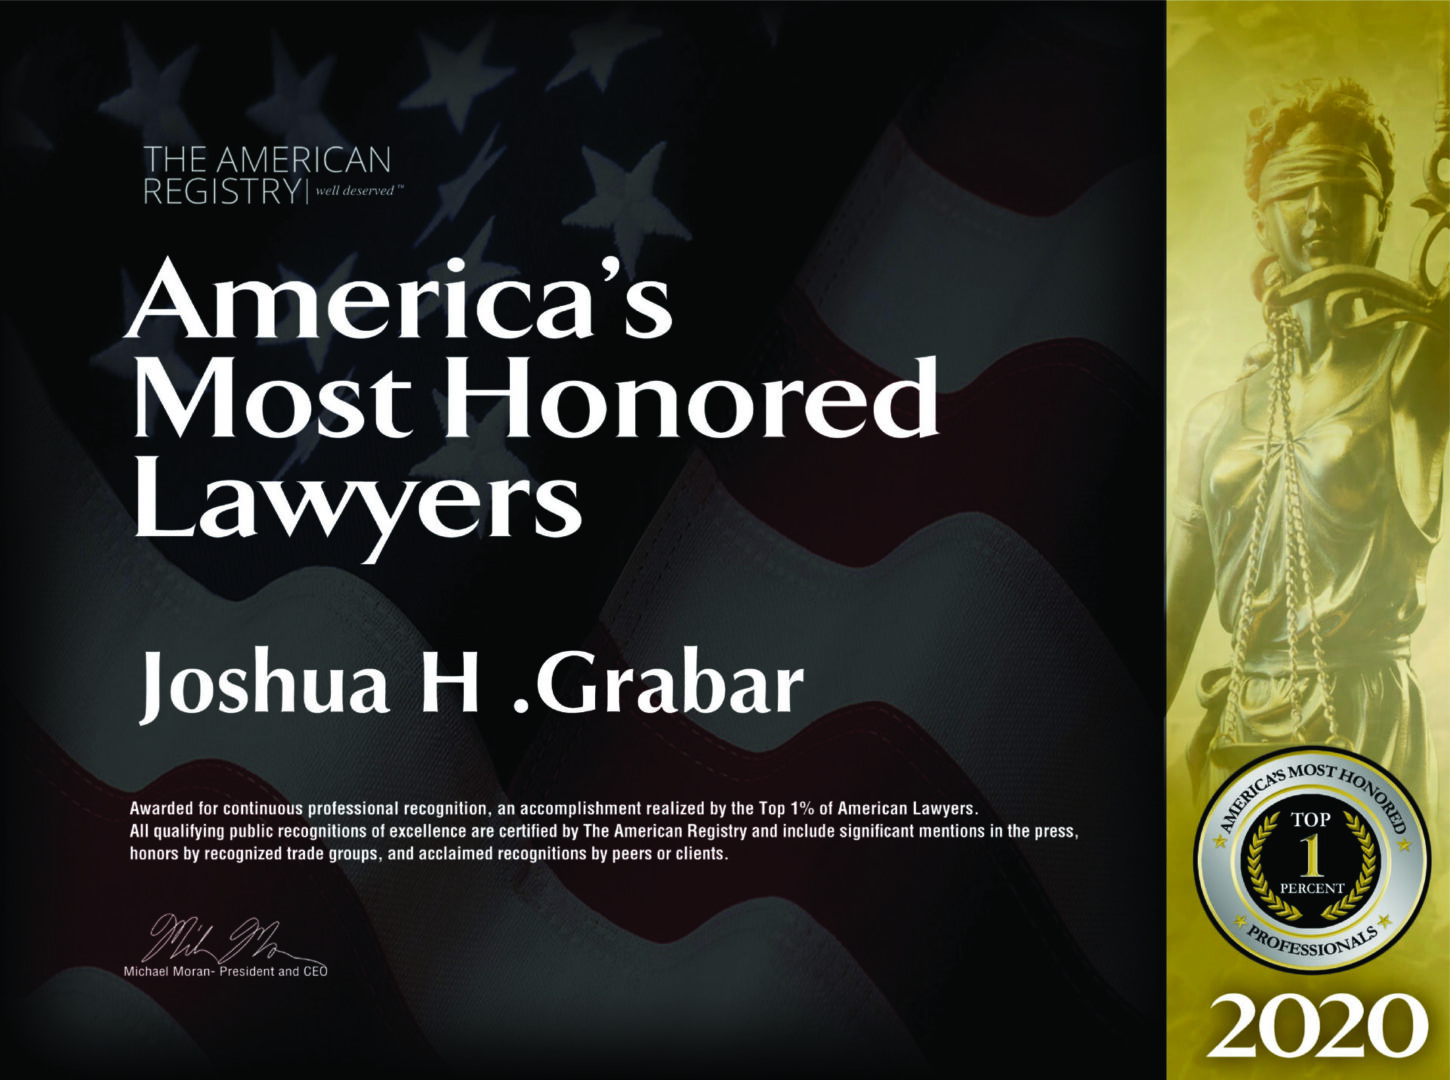 America's most honored lawyers Joshua H. Grabar